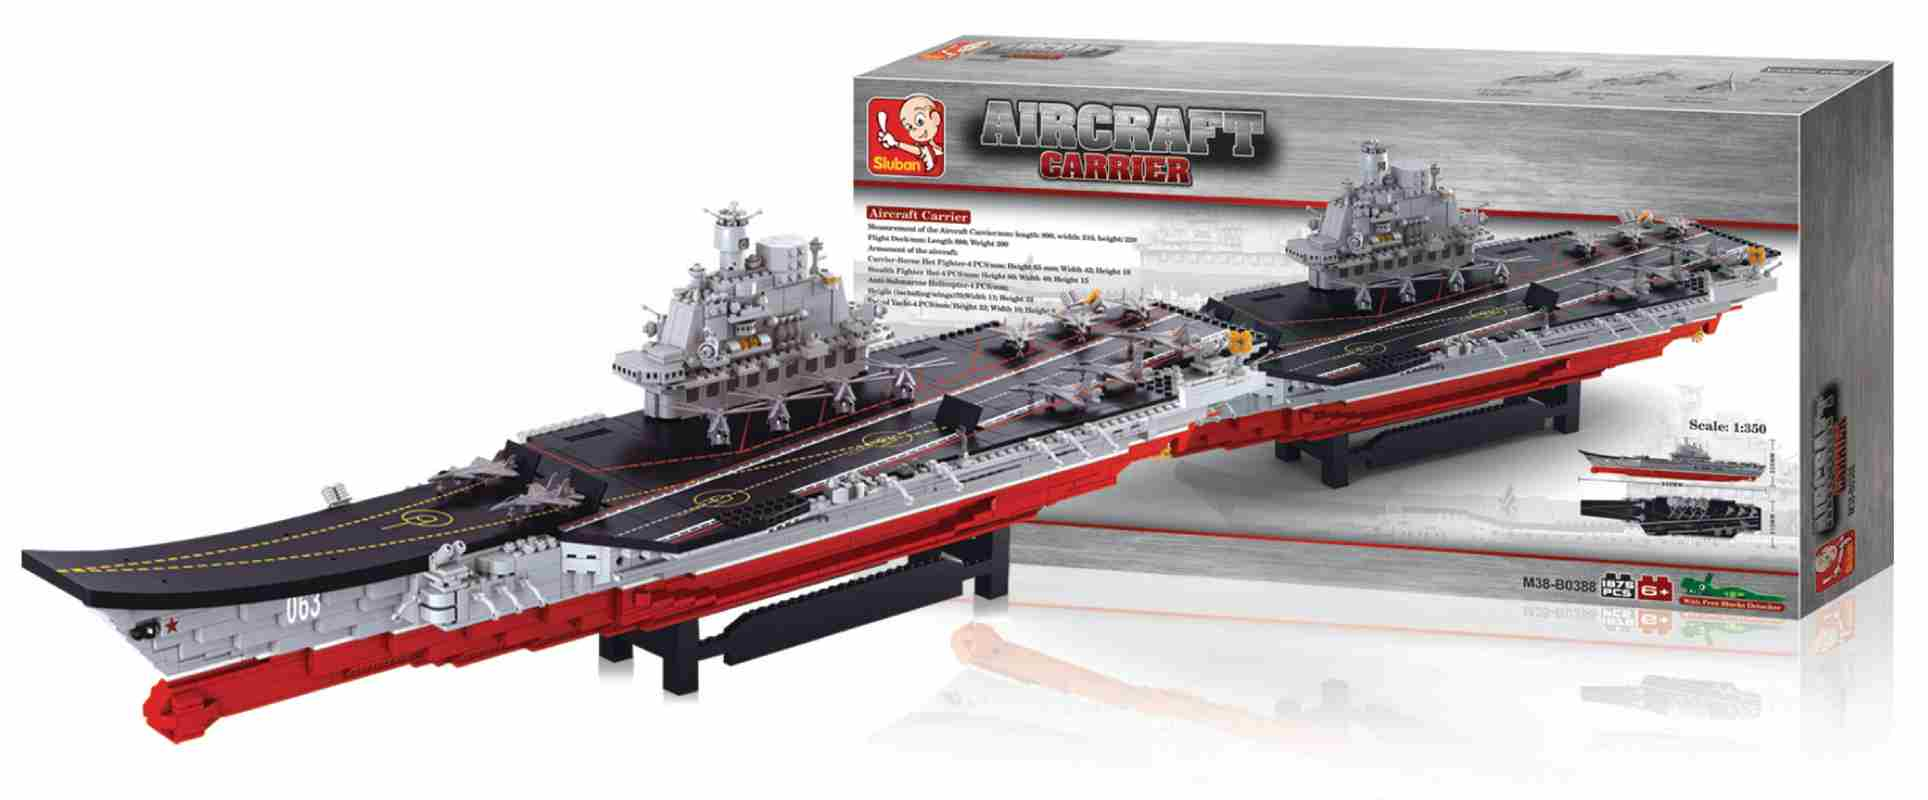 Sluban M38-B0388 - Aircraft Carrier Series - Large Aircraft Carrier